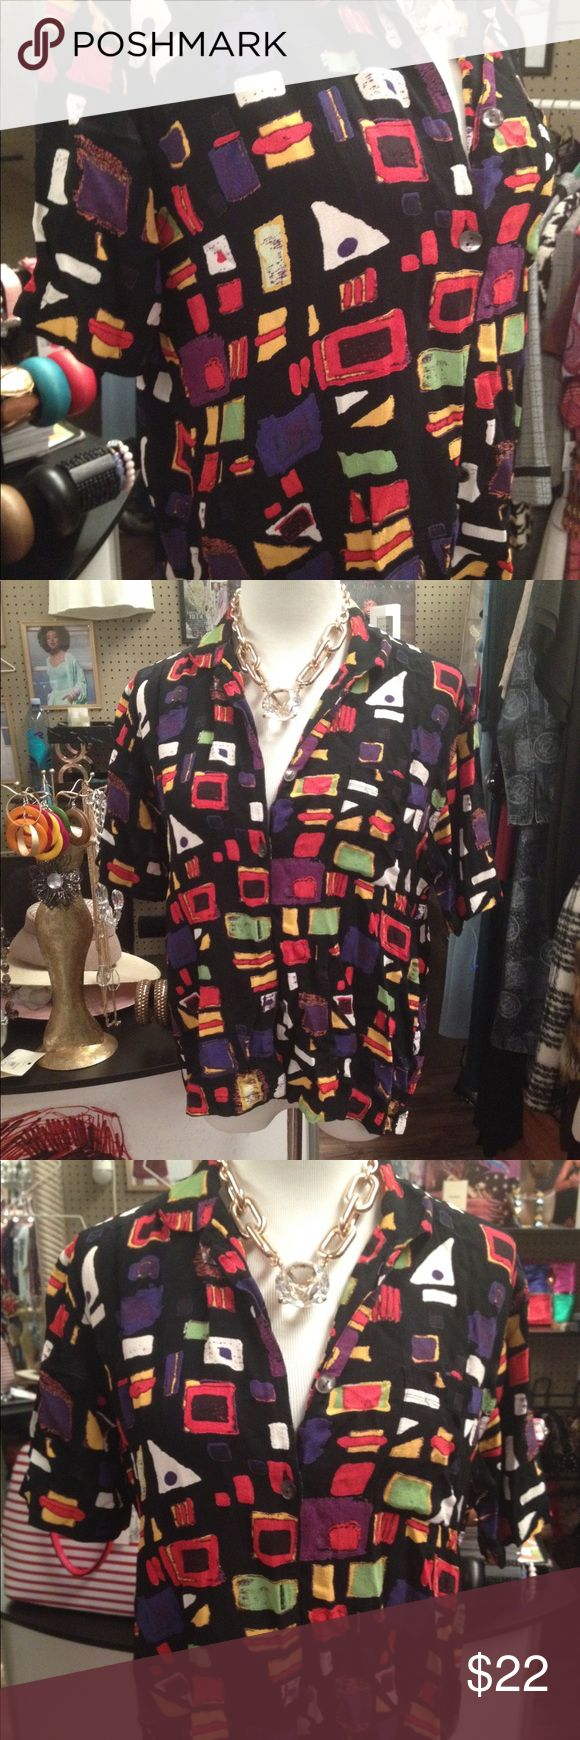 Chicos Vintage Abstract art blouse Beautiful blouse & bright in color. 90s style a vintage lovers dream Chico's Tops Button Down Shirts